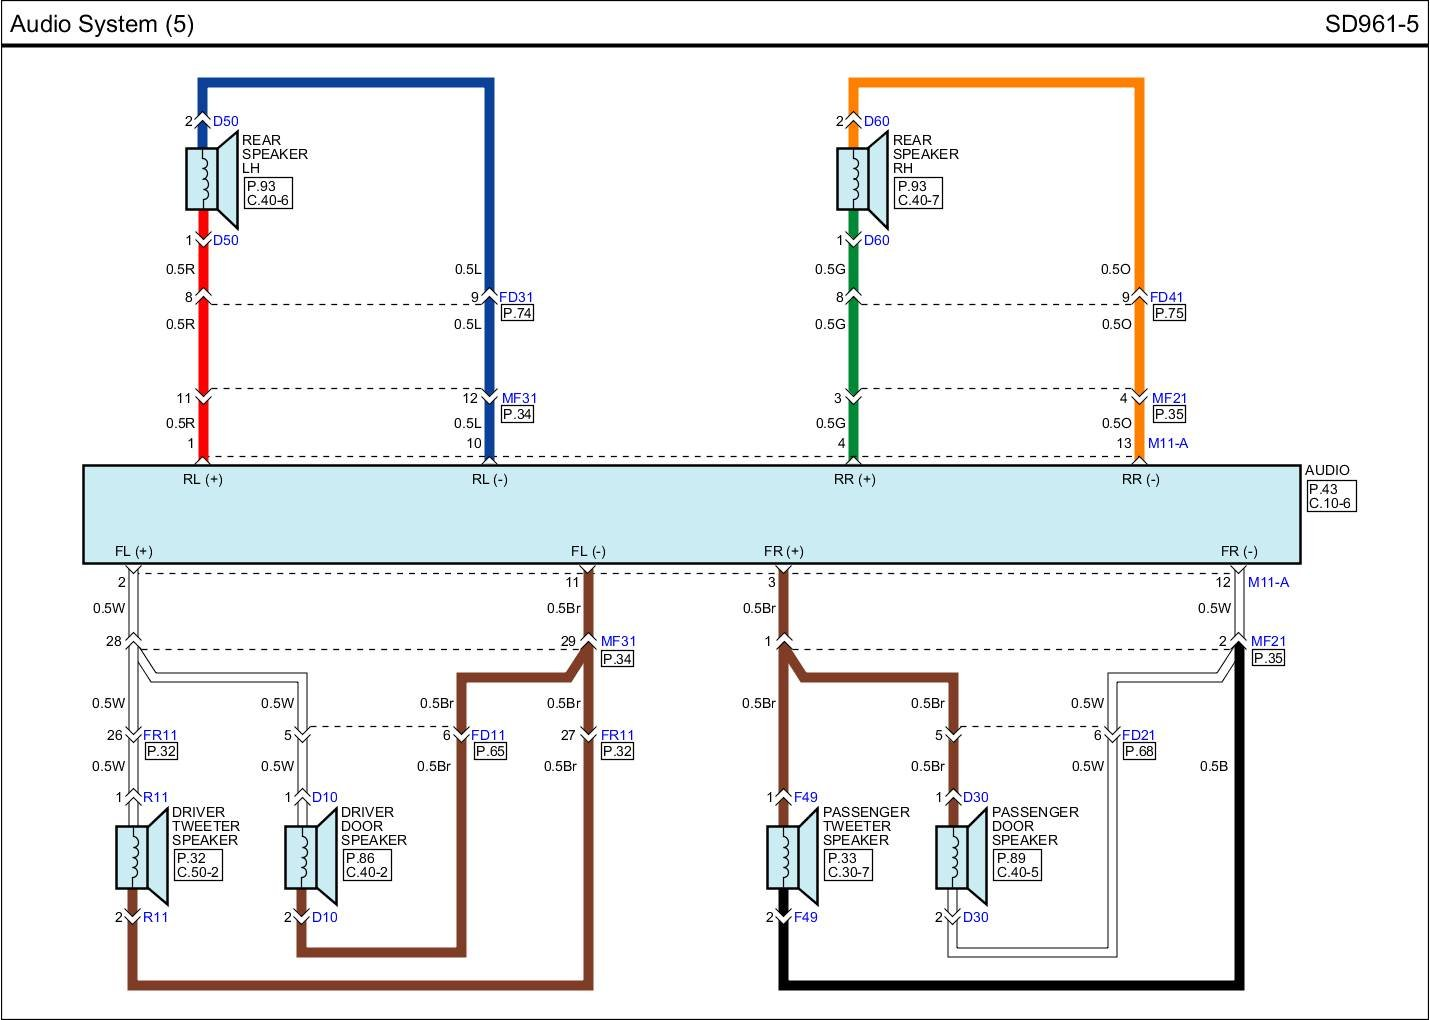 wiring diagram for 2013 kia rio sx navigation page 2 kia click image for larger version speakers jpg views 1065 size 160 3